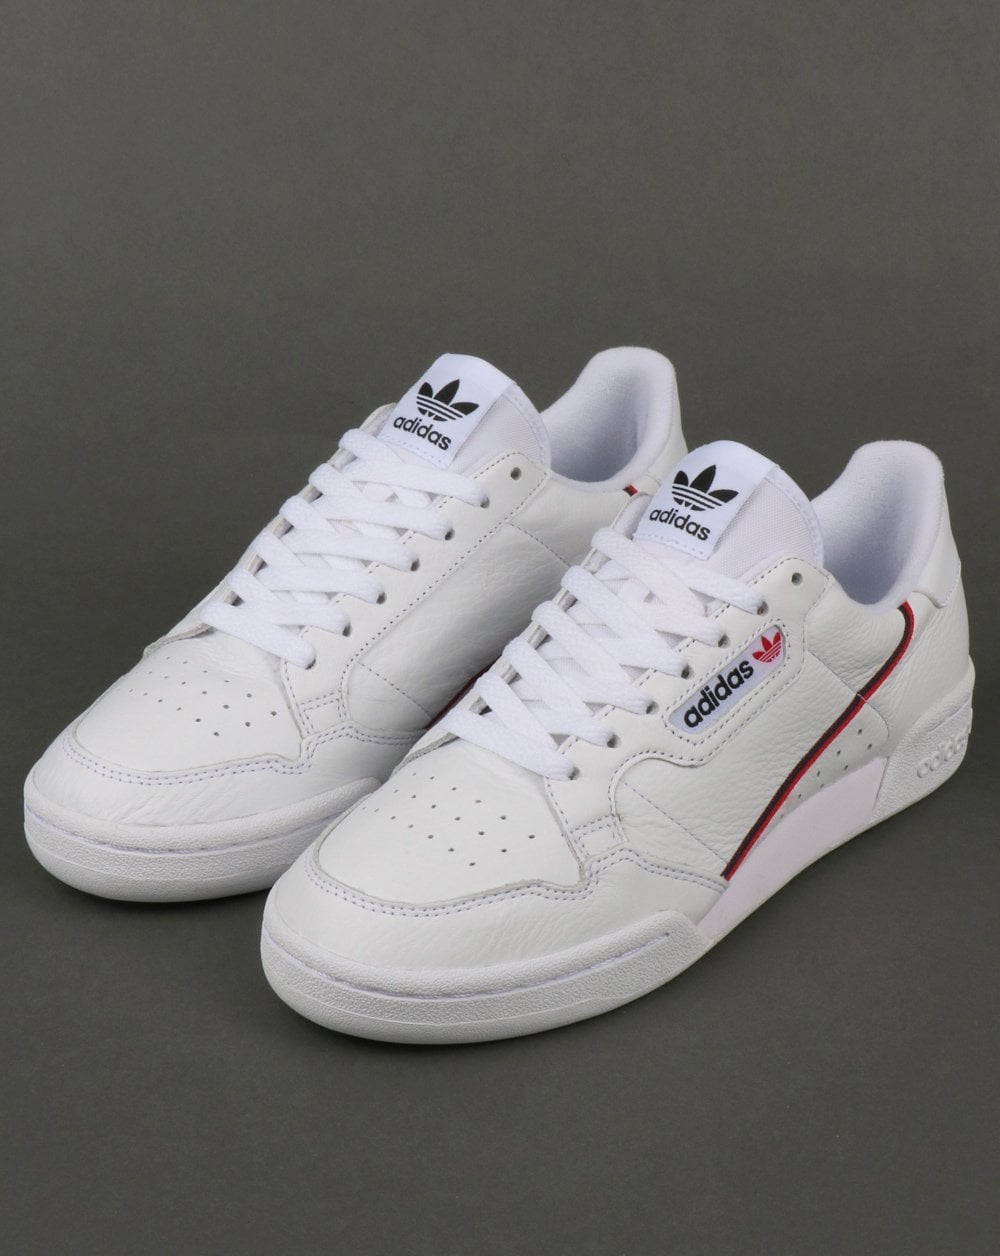 Adidas Continental 80 Trainers White Red Navy 7b696dbe2